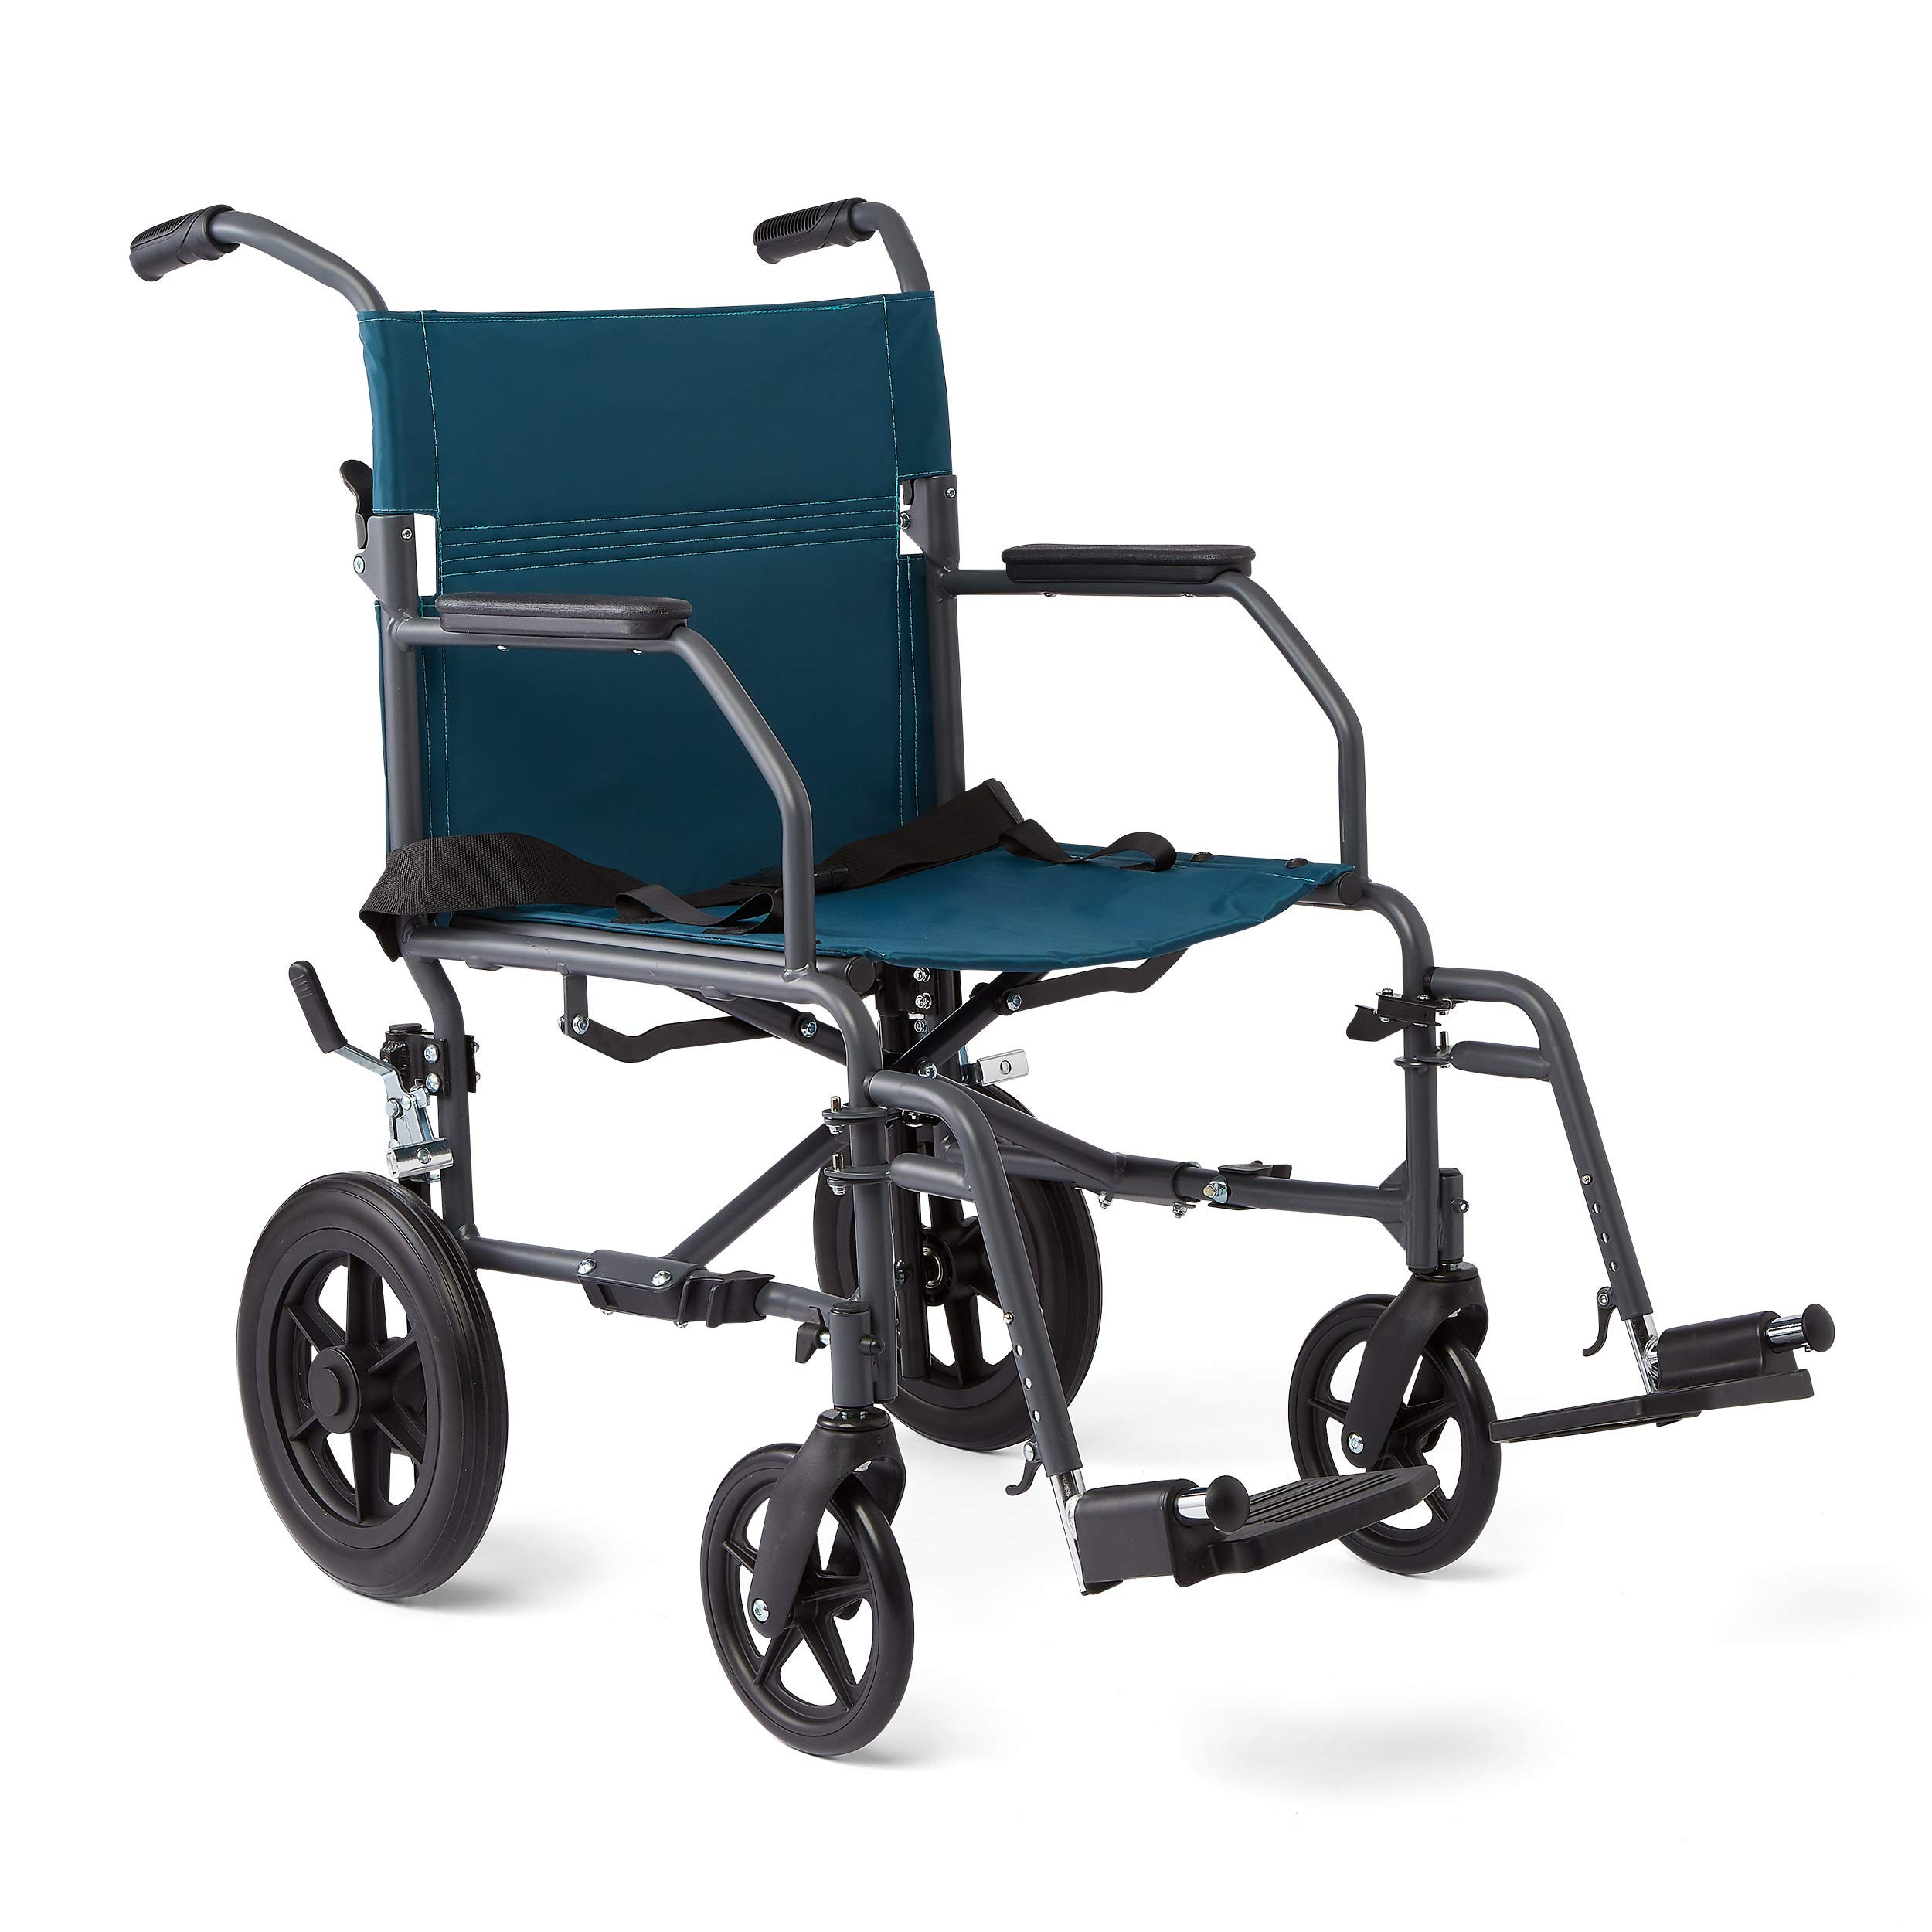 Medline Transport Wheelchair with Lightweight Steel Frame, Microban Antimicrobial Protection, Folding Chair is Portable, Large 12 inch Back Wheels, 19 inch Wide Seat, Teal by Medline